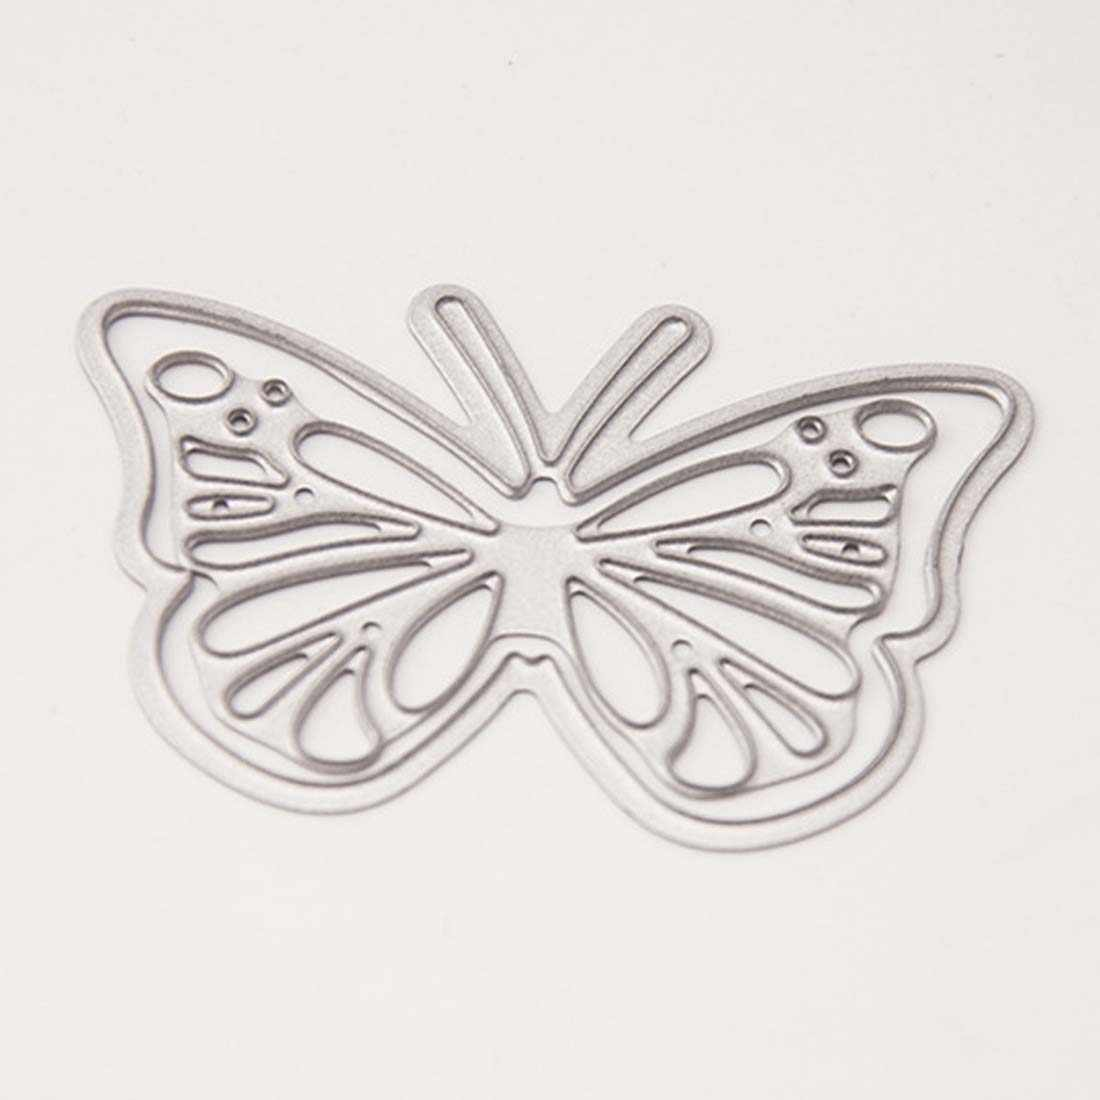 Butterfly Metal Die cutting Dies For DIY Scrapbooking Photo Album Embossing Folder 5x3.5cm